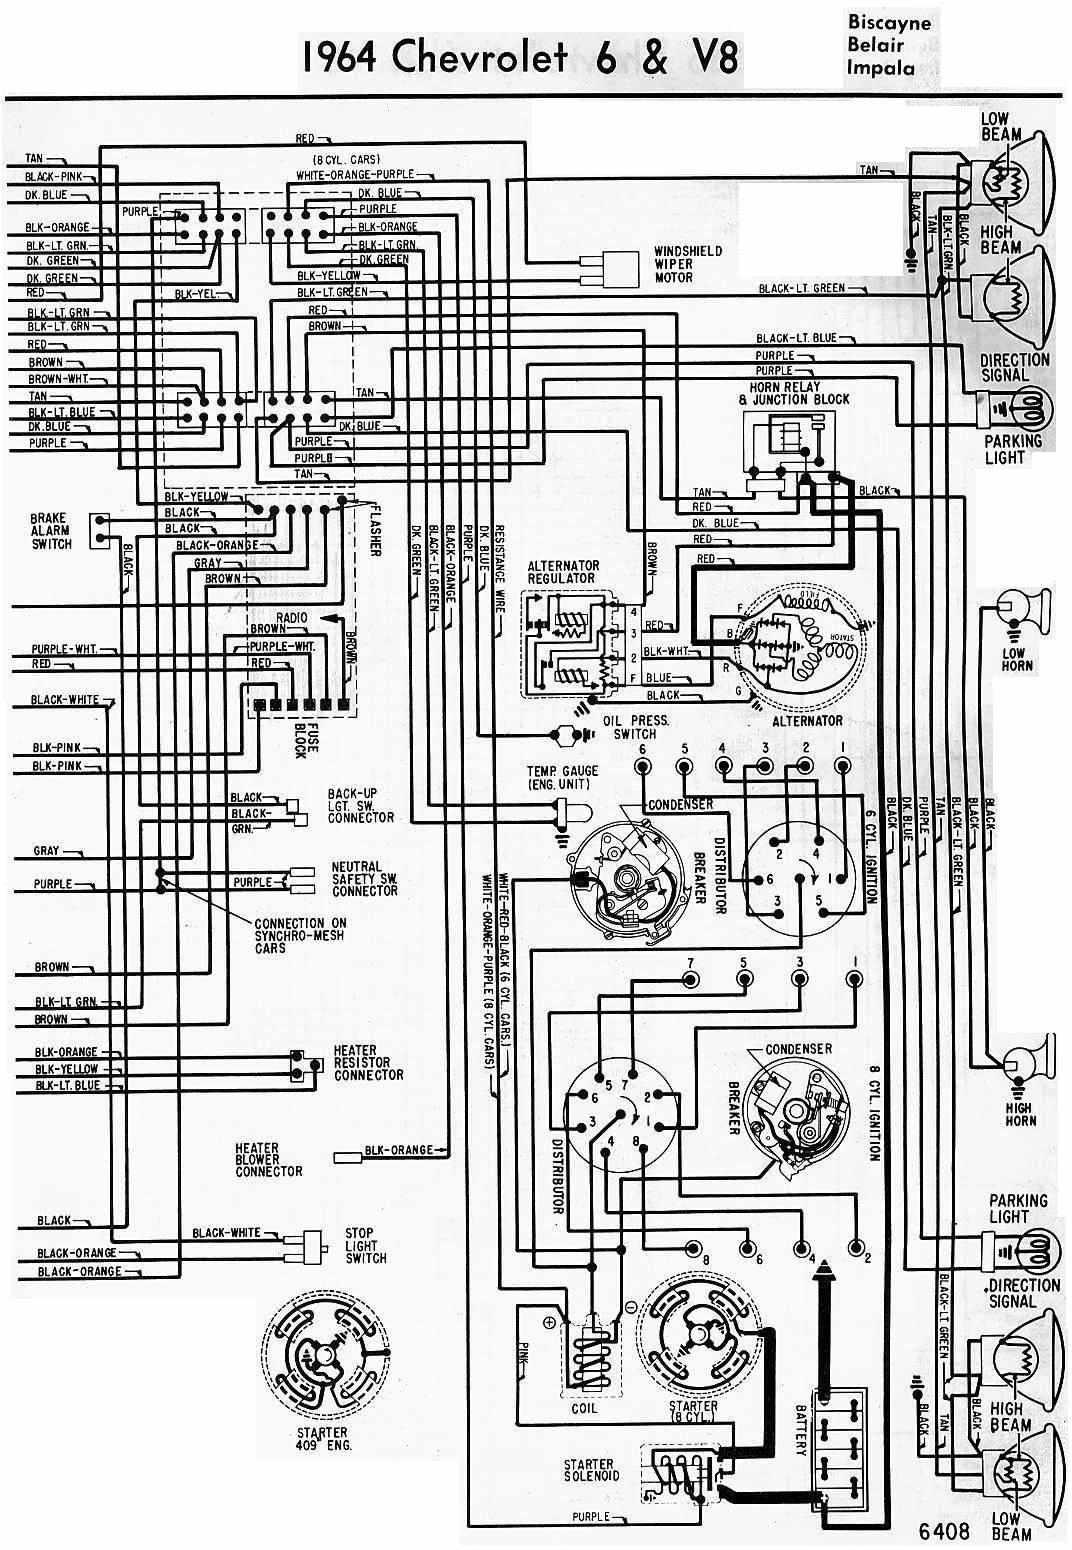 Electrical+Wiring+Diagram+Of+1964+Chevrolet+6+And+V8 1964 impala wiring harness 1996 jeep cherokee wiring \u2022 wiring 64 Chevy Impala Wiring Diagram at webbmarketing.co